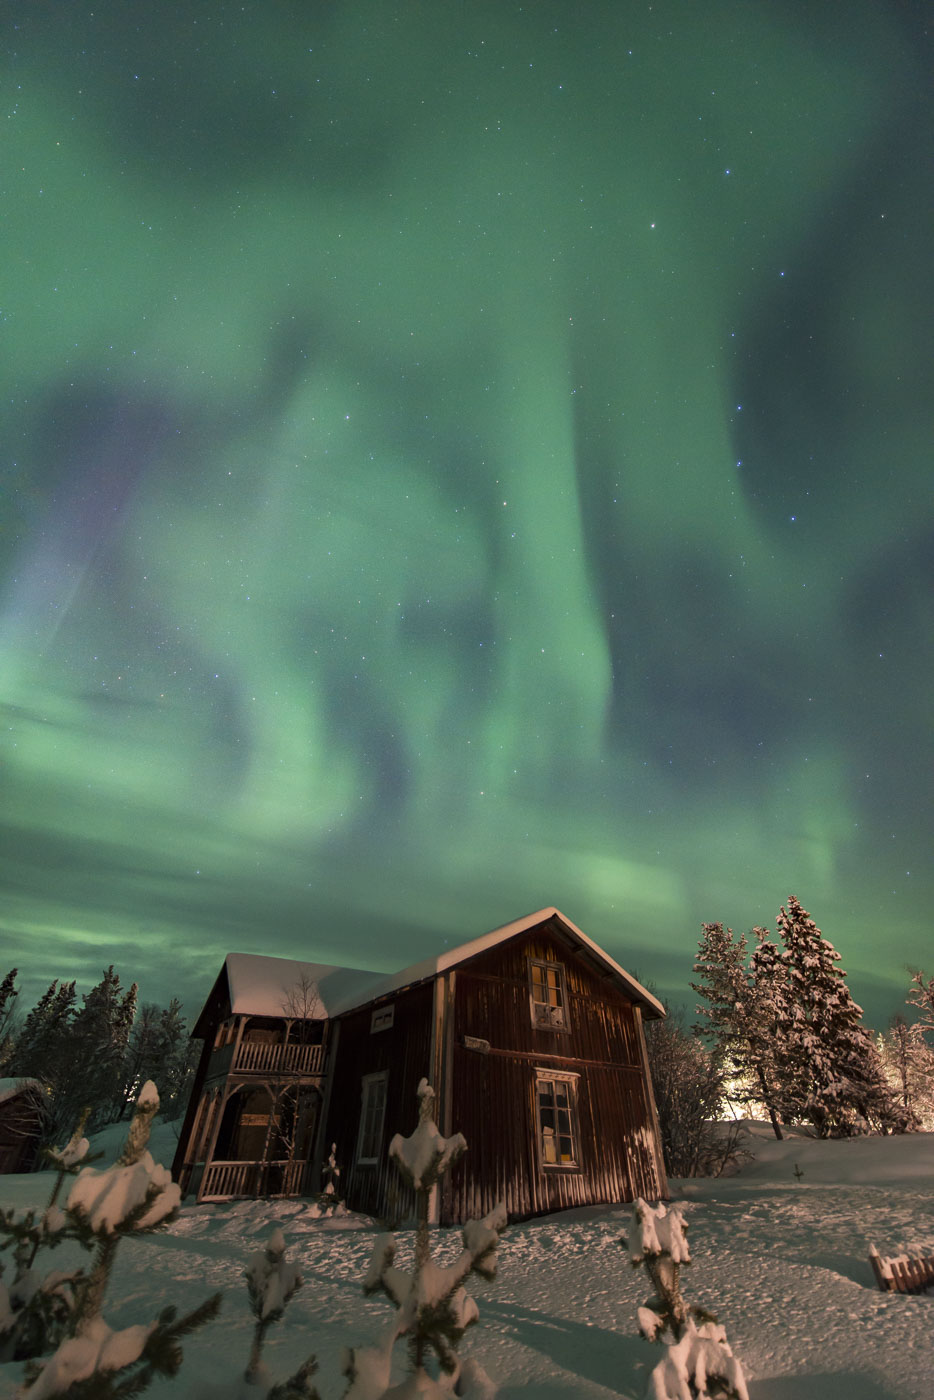 Aurroa borealis over old cabin at Slussfors, Sweden.